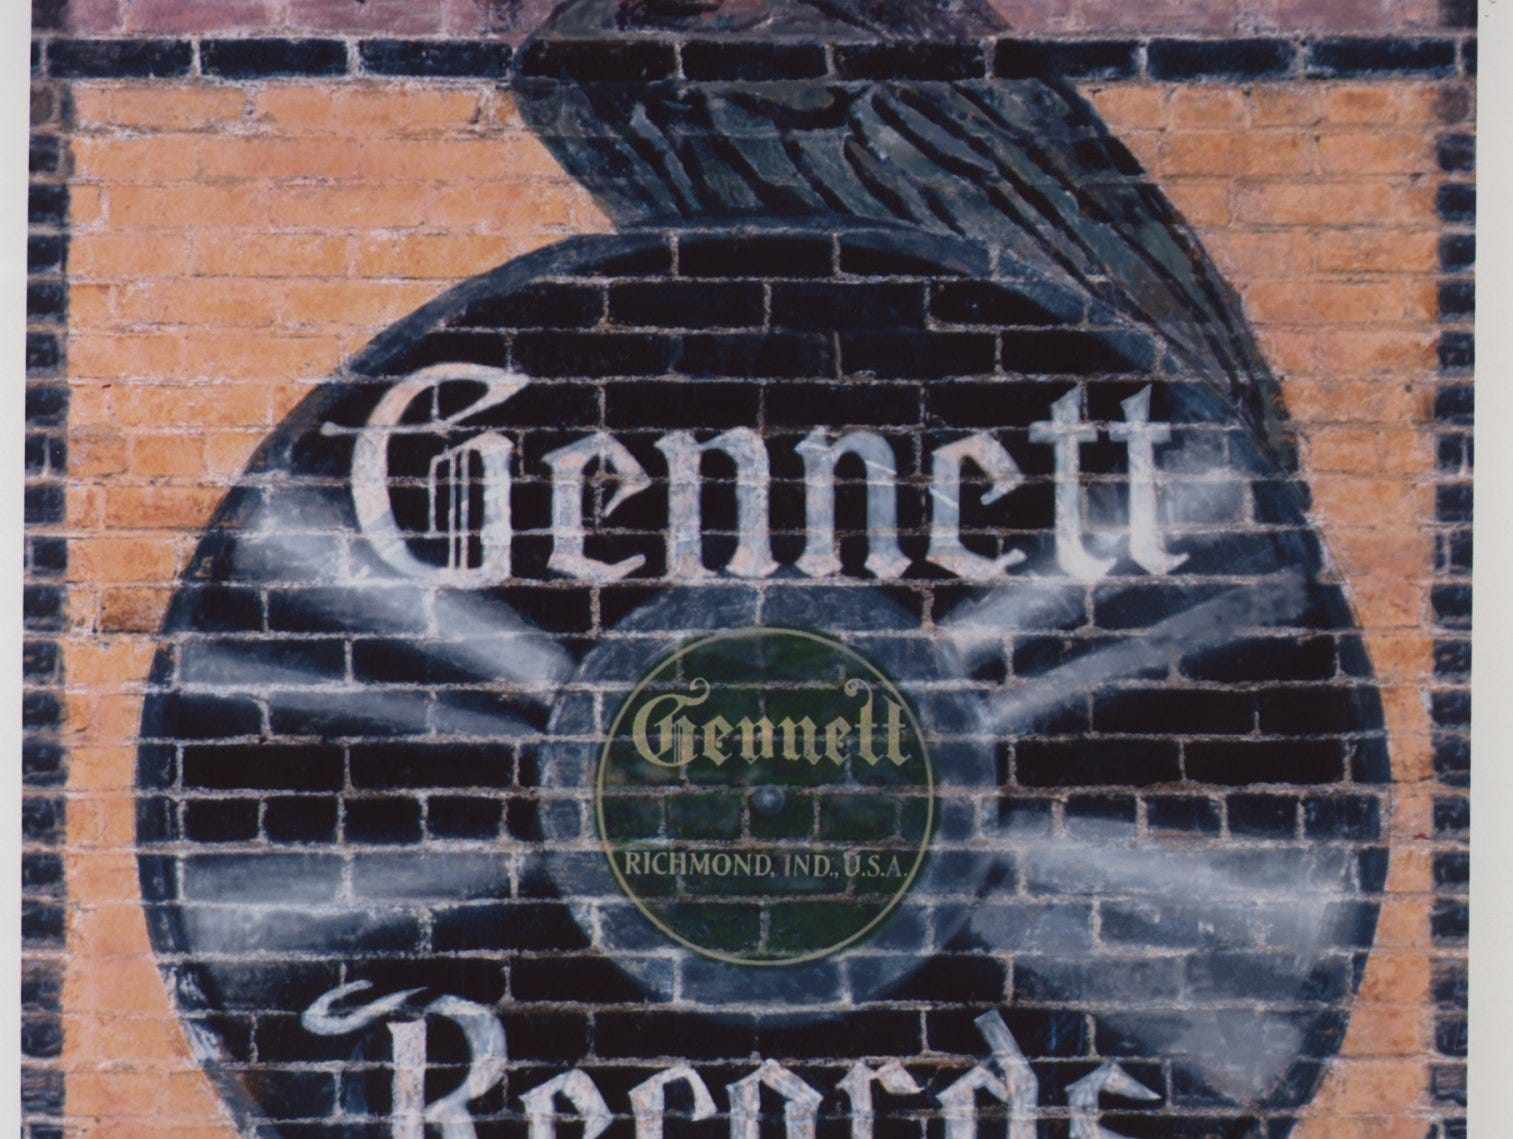 Gennett Records